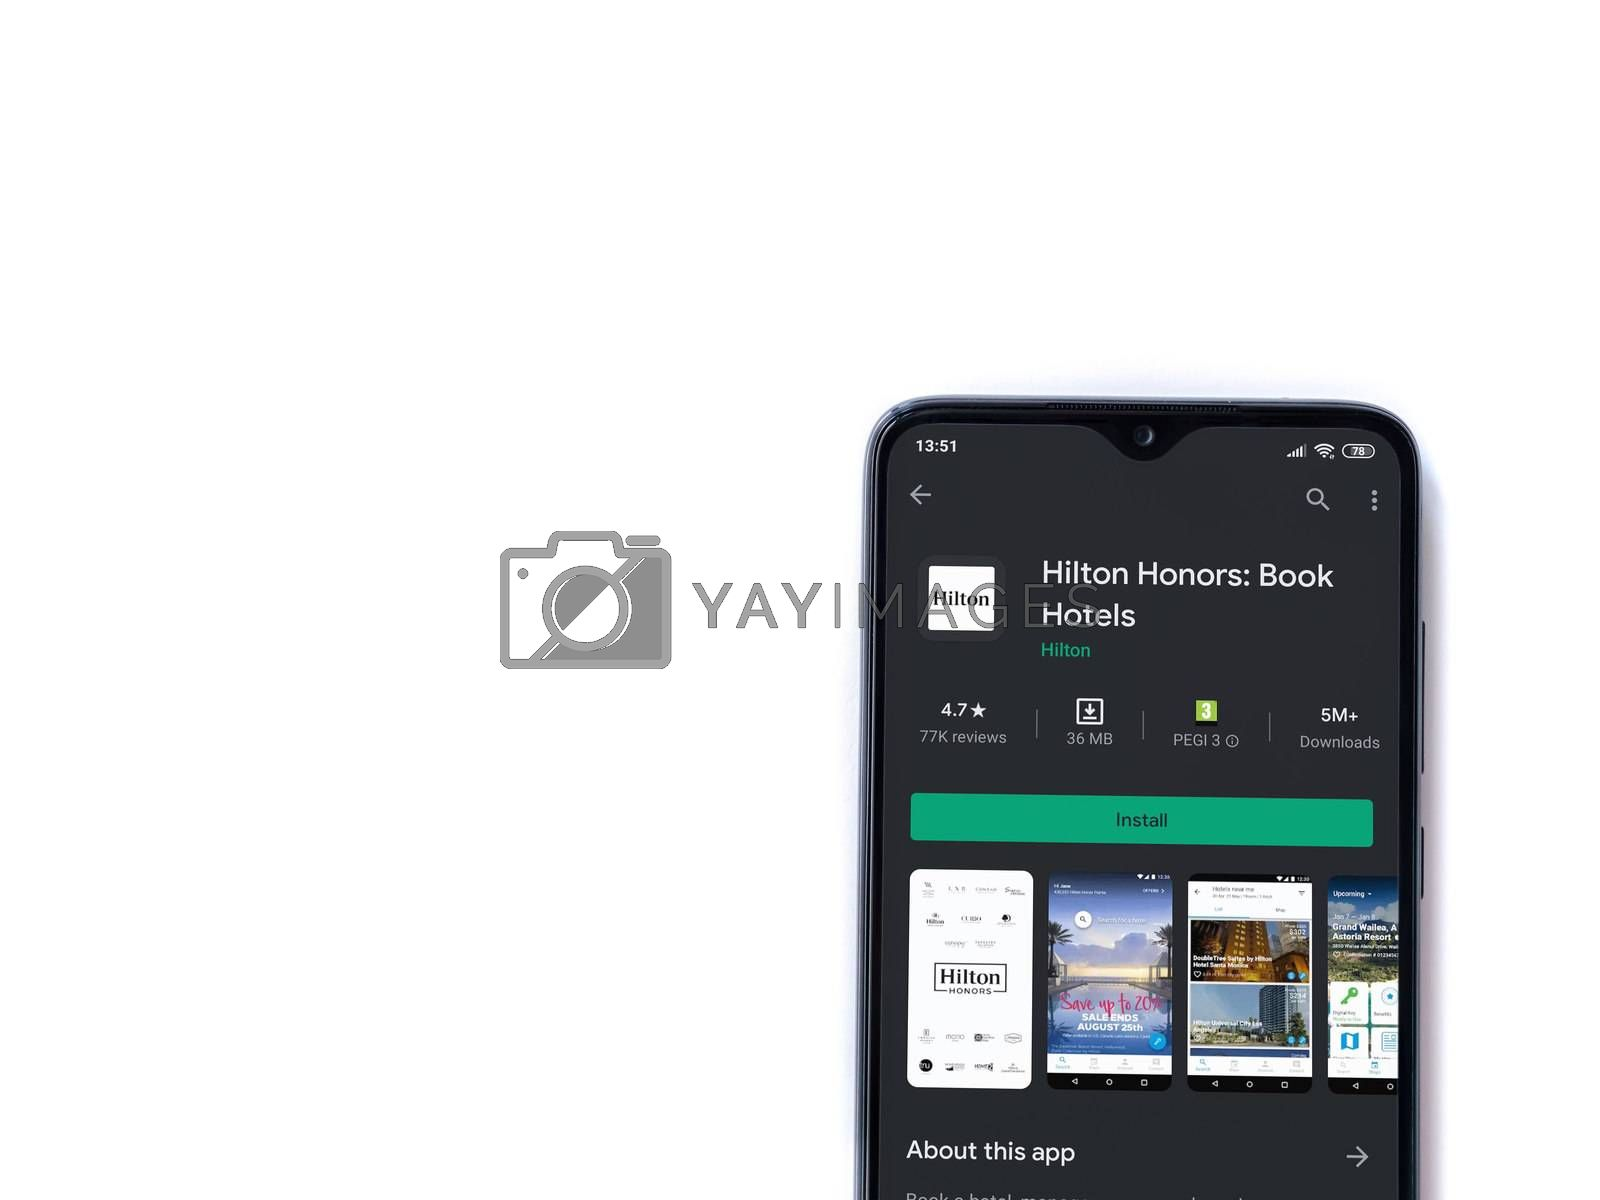 Lod, Israel - July 8, 2020: Hilton Honors app play store page on the display of a black mobile smartphone isolated on white background. Top view flat lay with copy space.